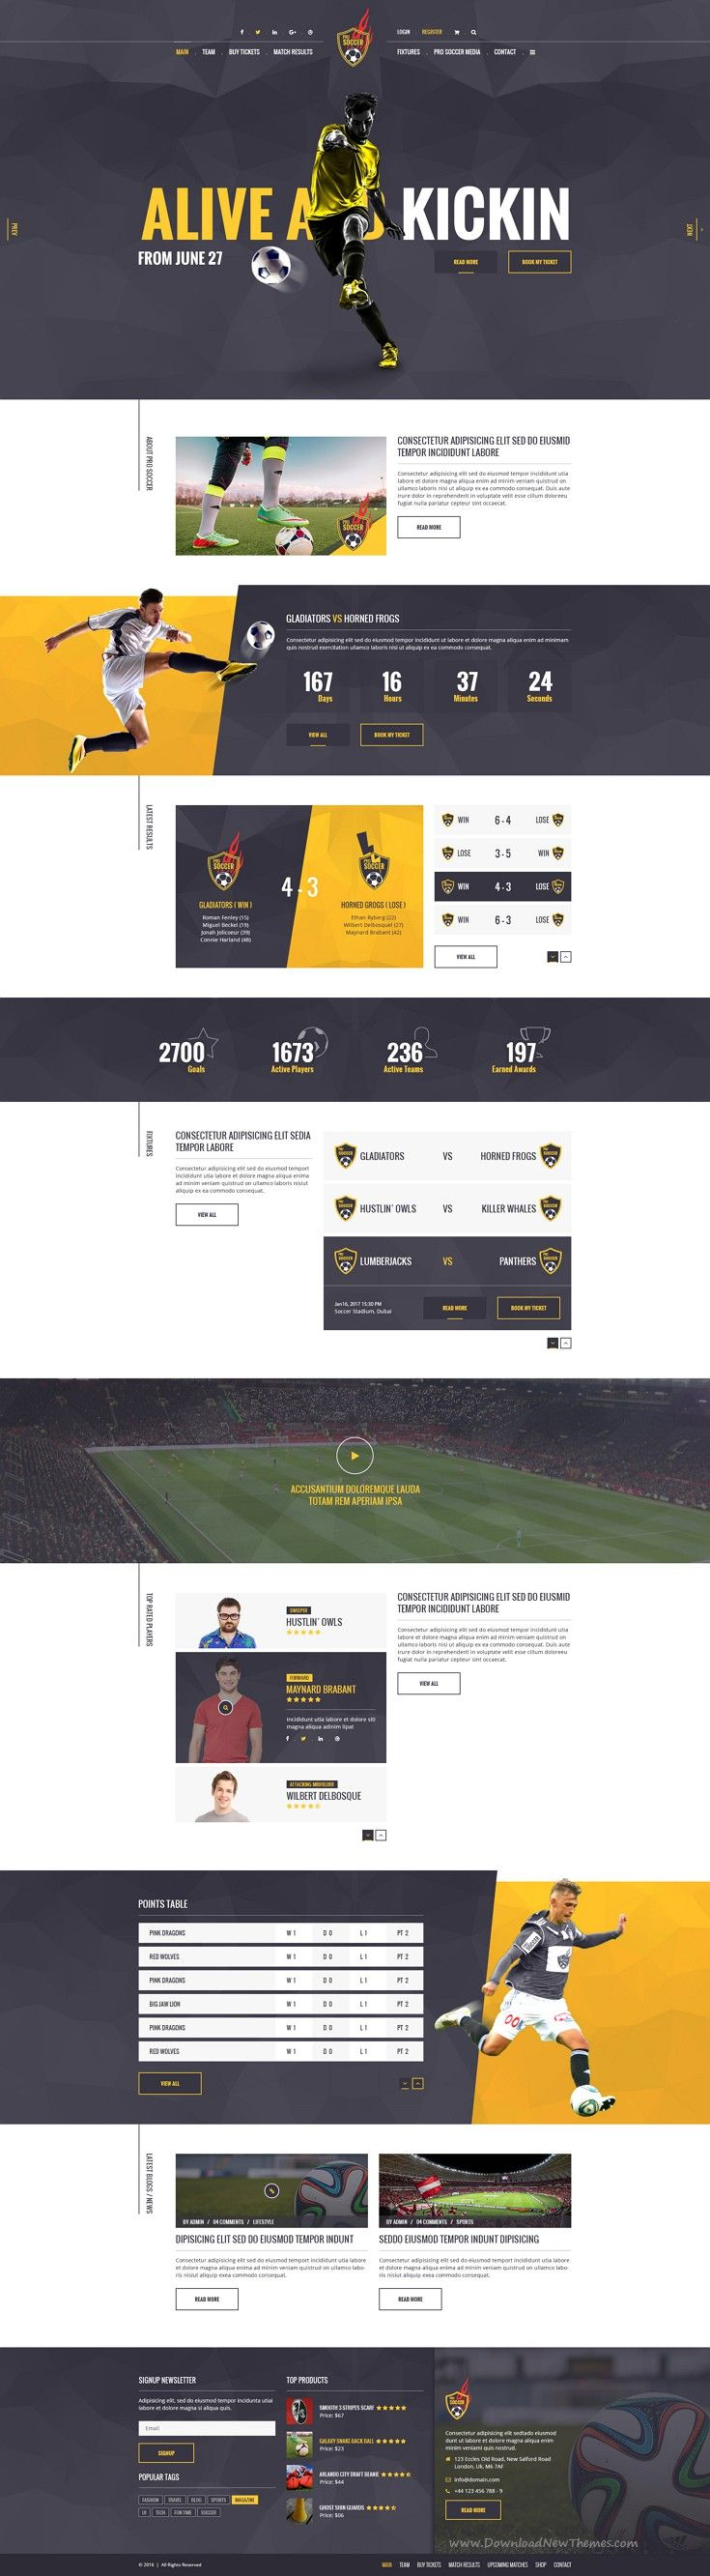 Soccer Acumen is a modern and creative PSD template specifically designed for #Soccer and #Football #clubs, but could also be used for any other sports club or sports event #website. Download Now!